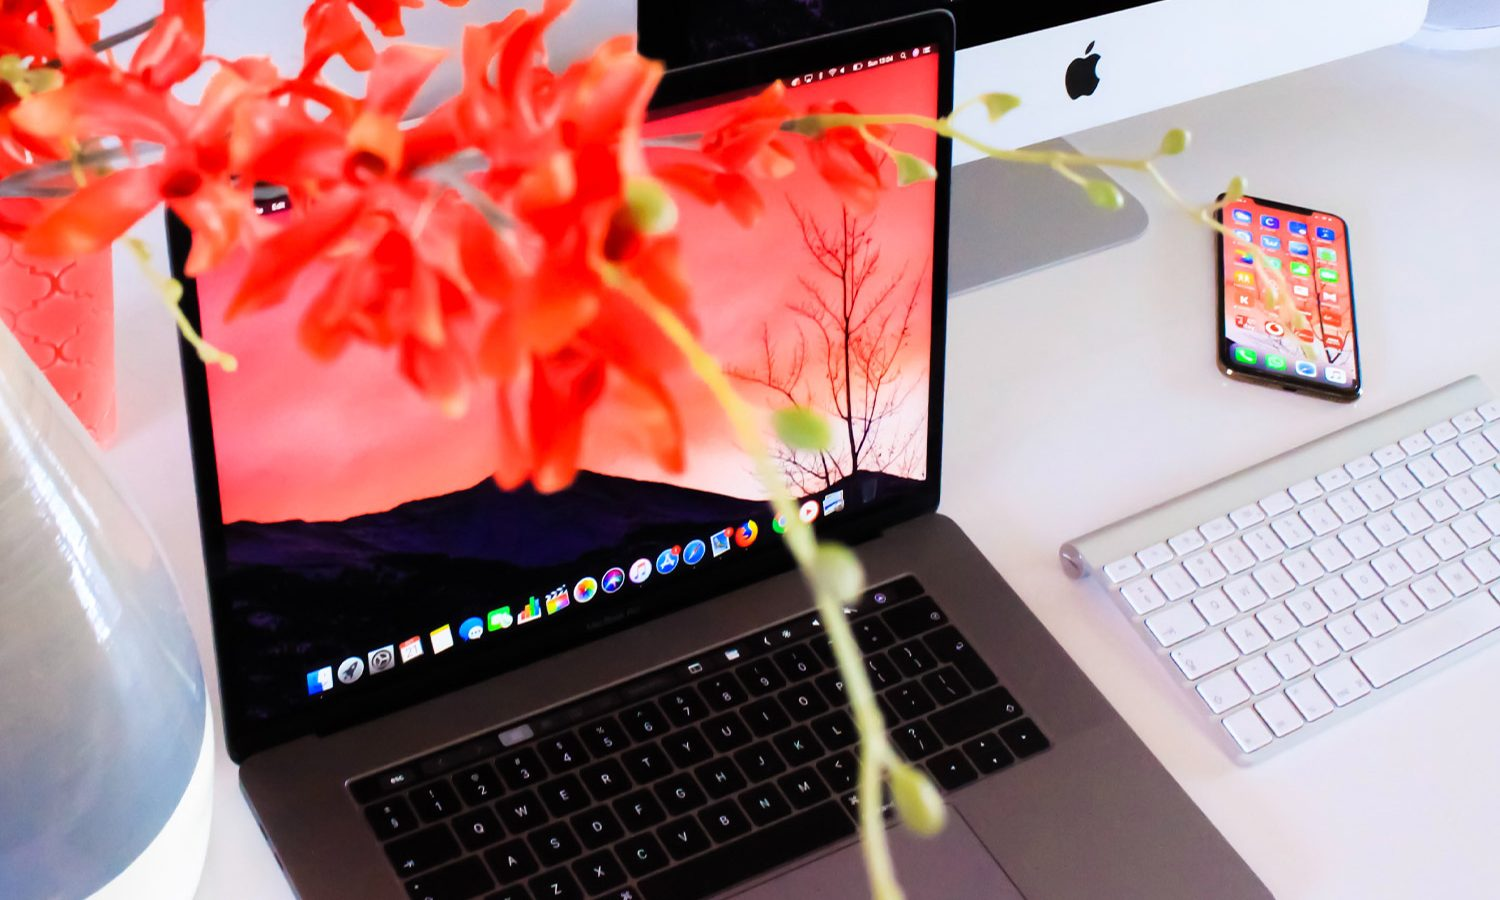 Vase of flowers superimposed over computer keyboarad, iphone, and screen.